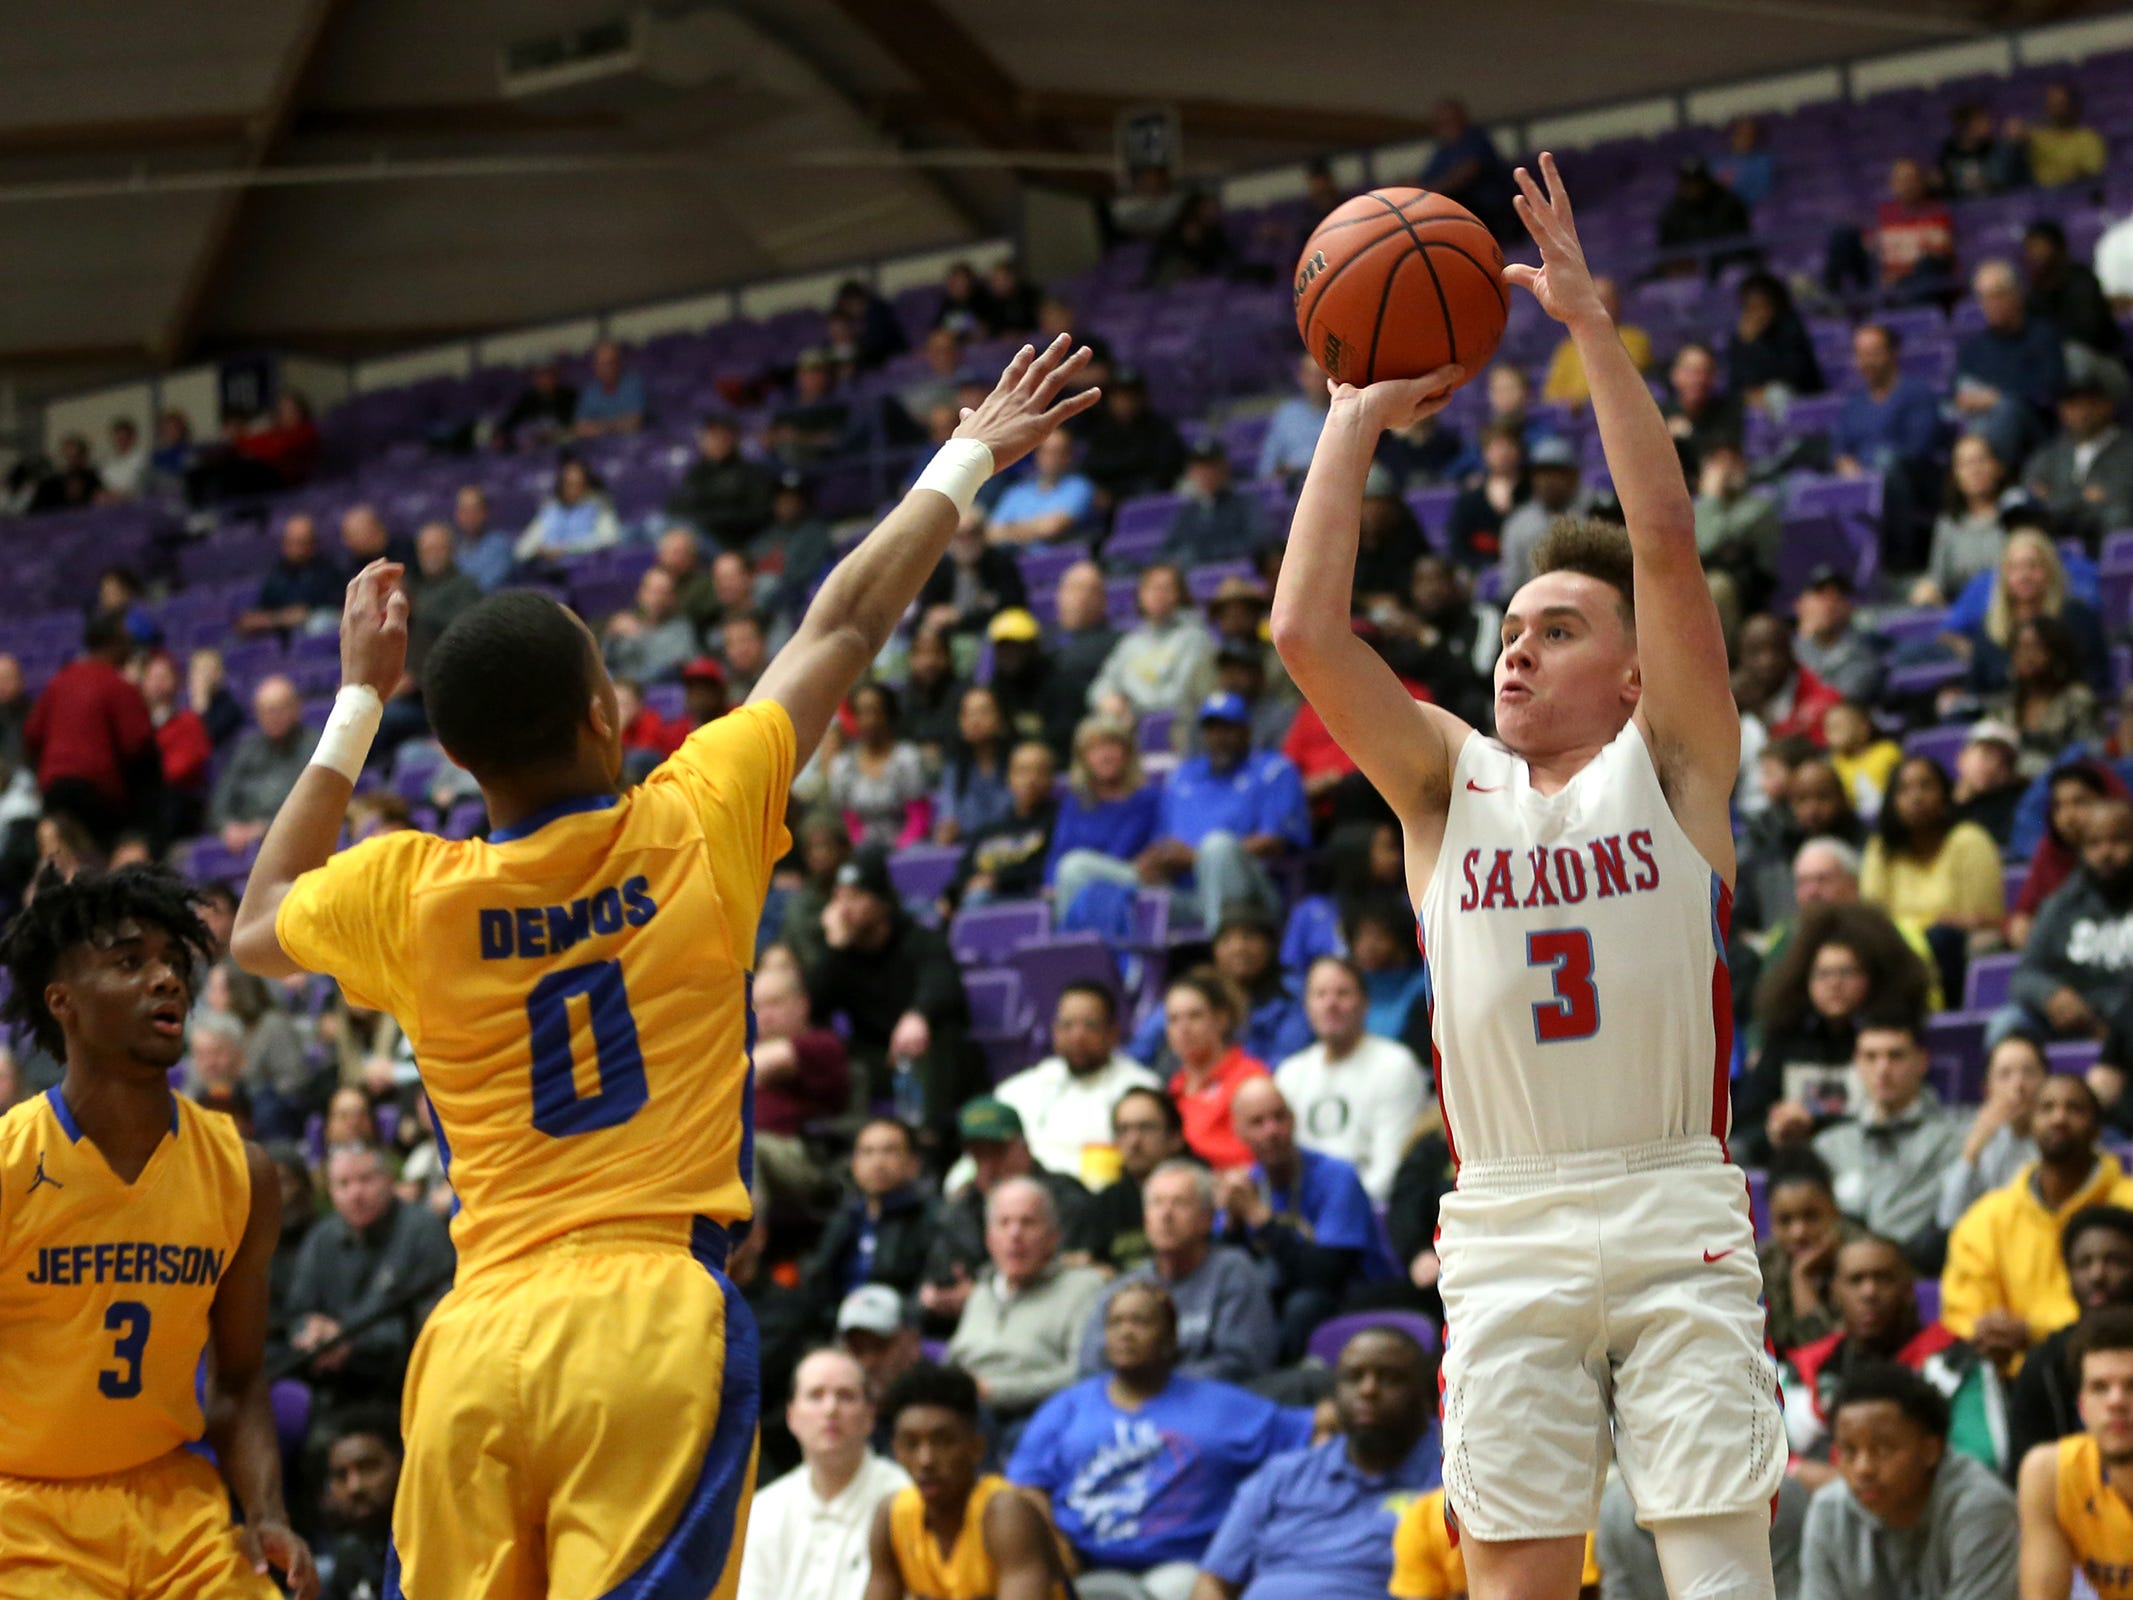 South Salem's Trey Galbraith (3) protects the ball during the South Salem vs. Jefferson boys basketball OSAA 6A semifinal game at Chiles Center in Portland on Friday, March 8, 2019.